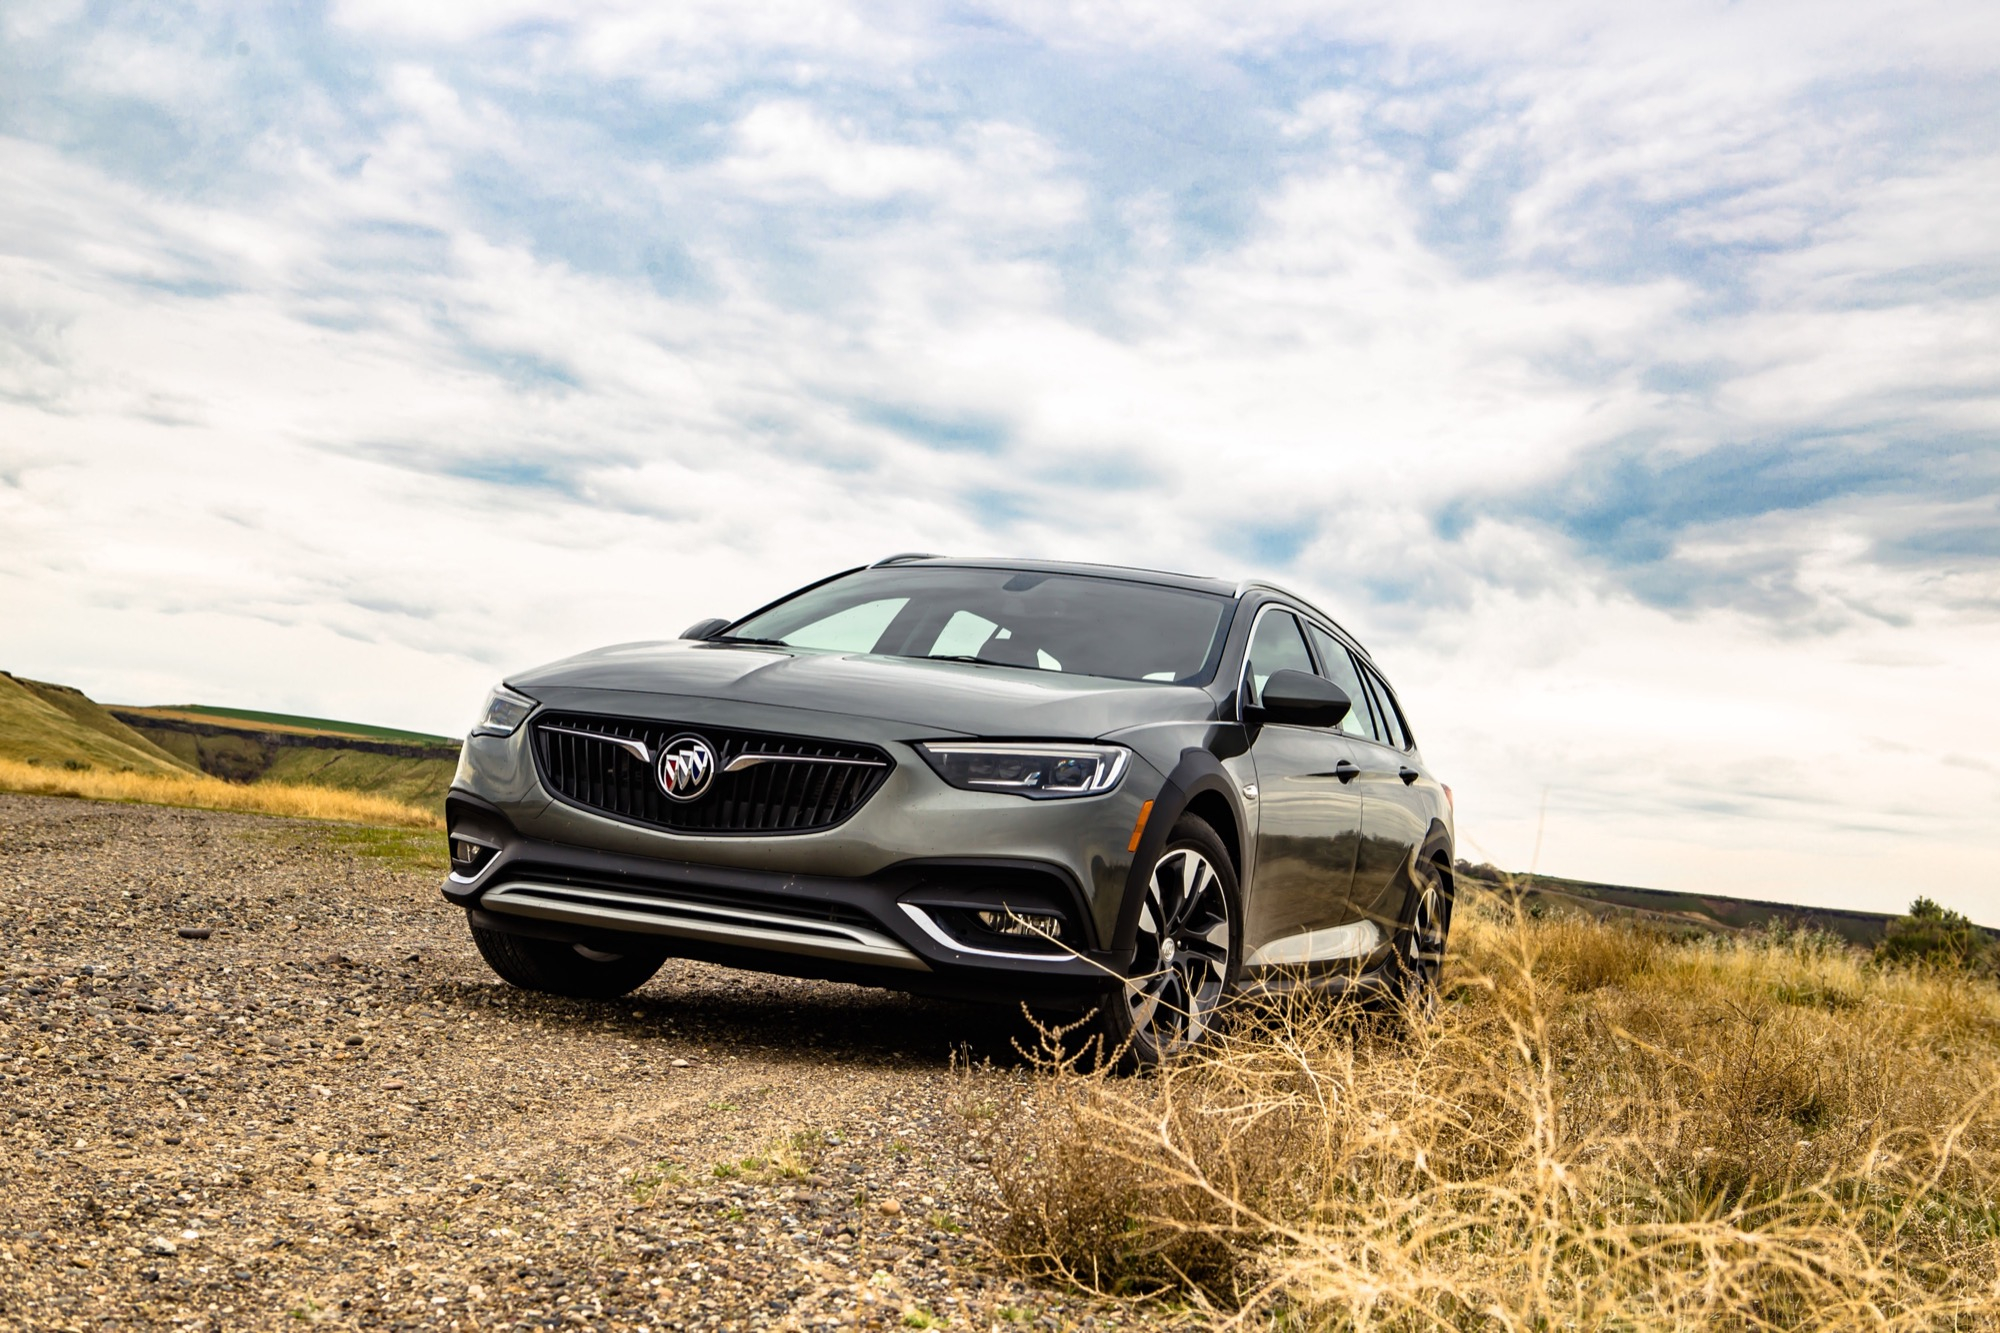 Does Buick Even Want To Sell The Regal Tourx? | Gm Authority 2022 Buick Regal Tourx Discontinued, Mpg, Engine